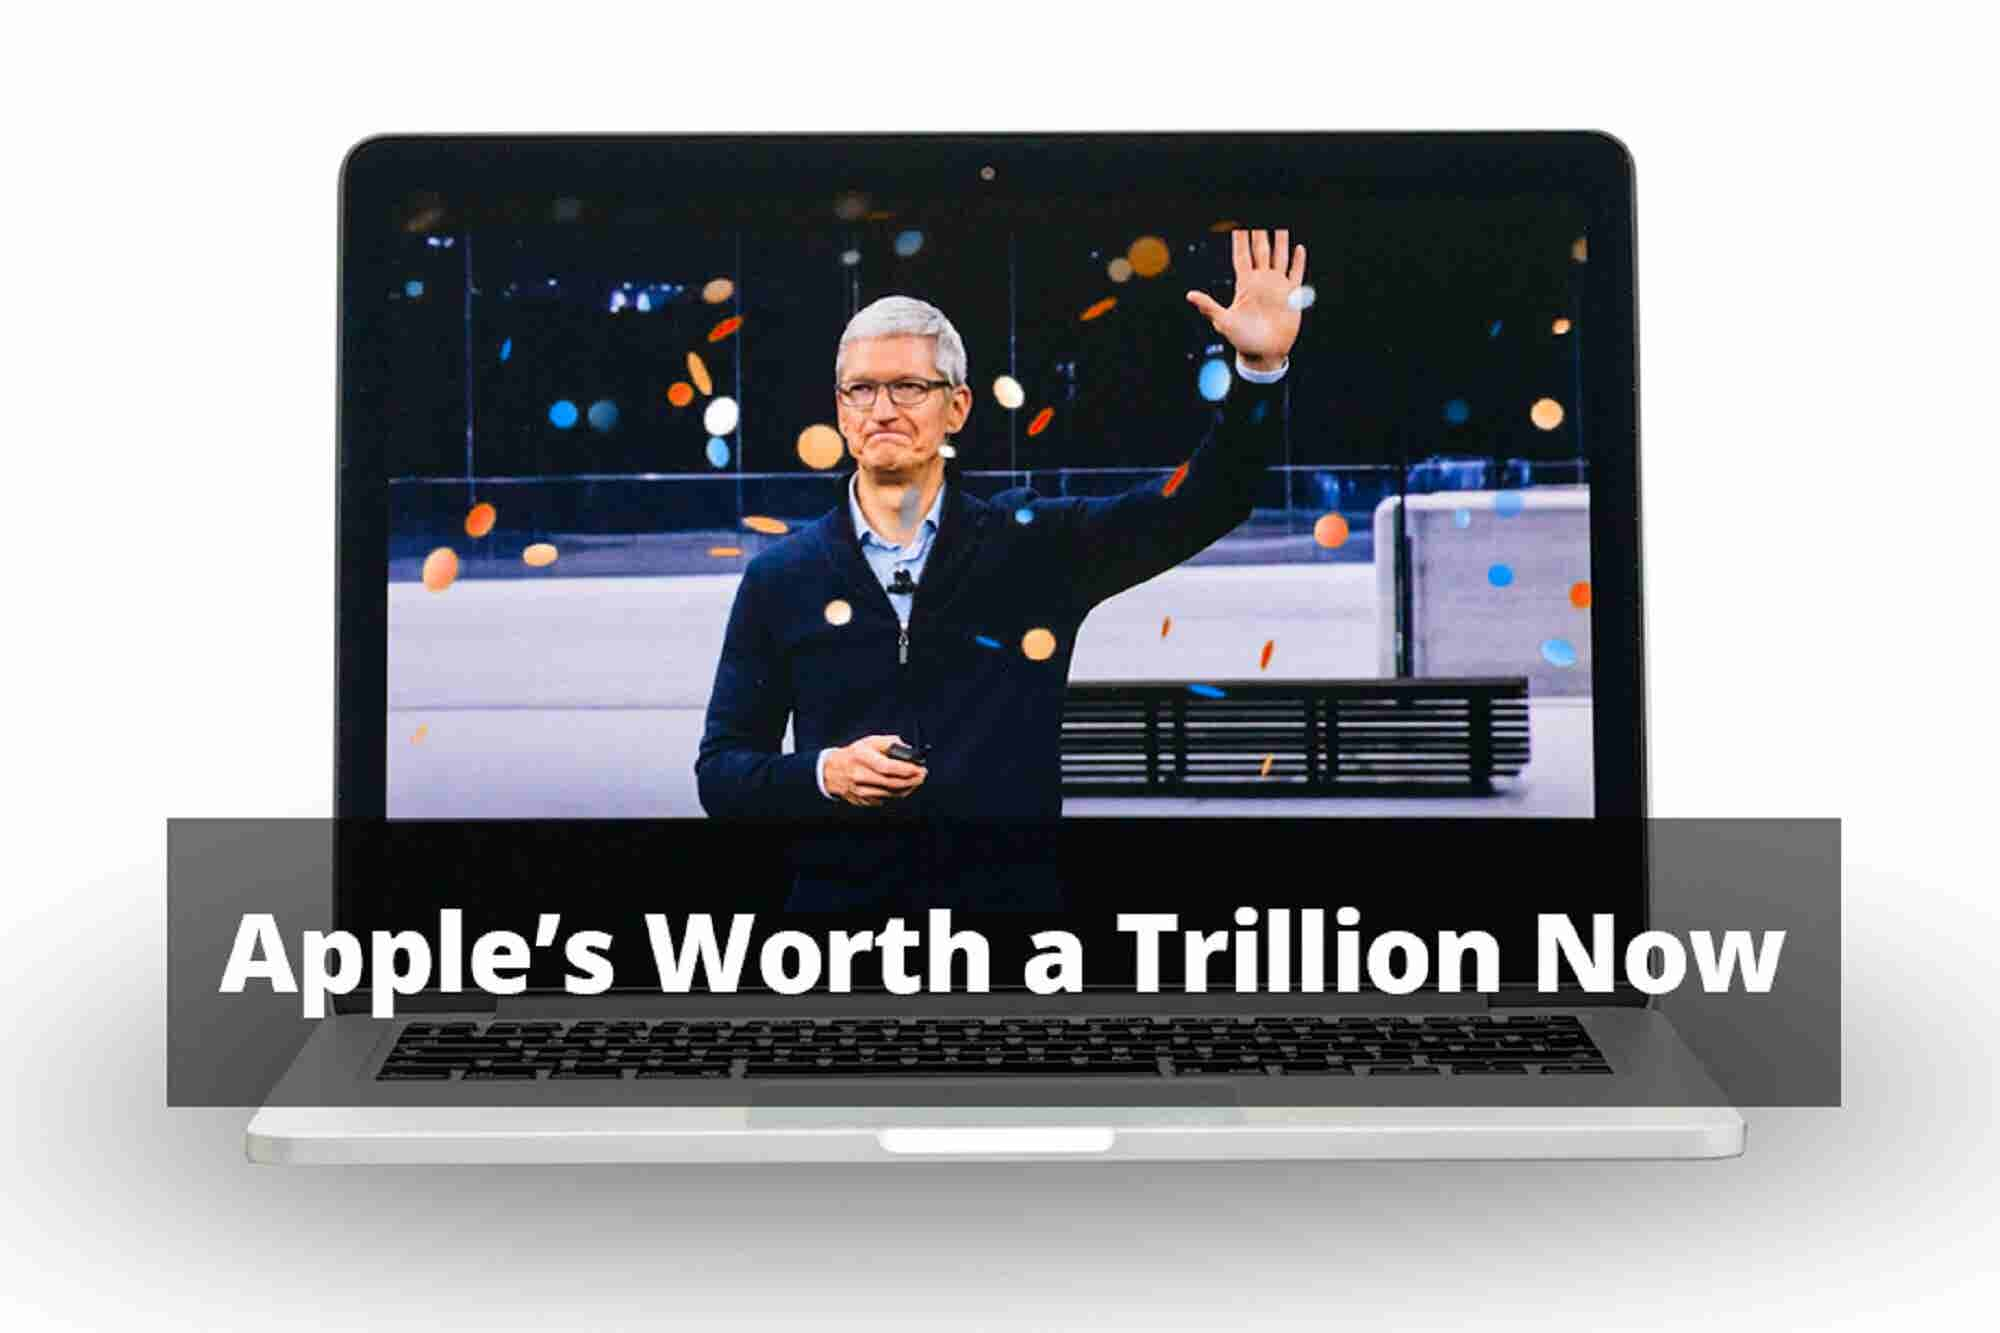 Apple's Trillion Dollars Worth Dream & Jet Airways Could Lose it All in 60 Days: 4 Things to Know Today